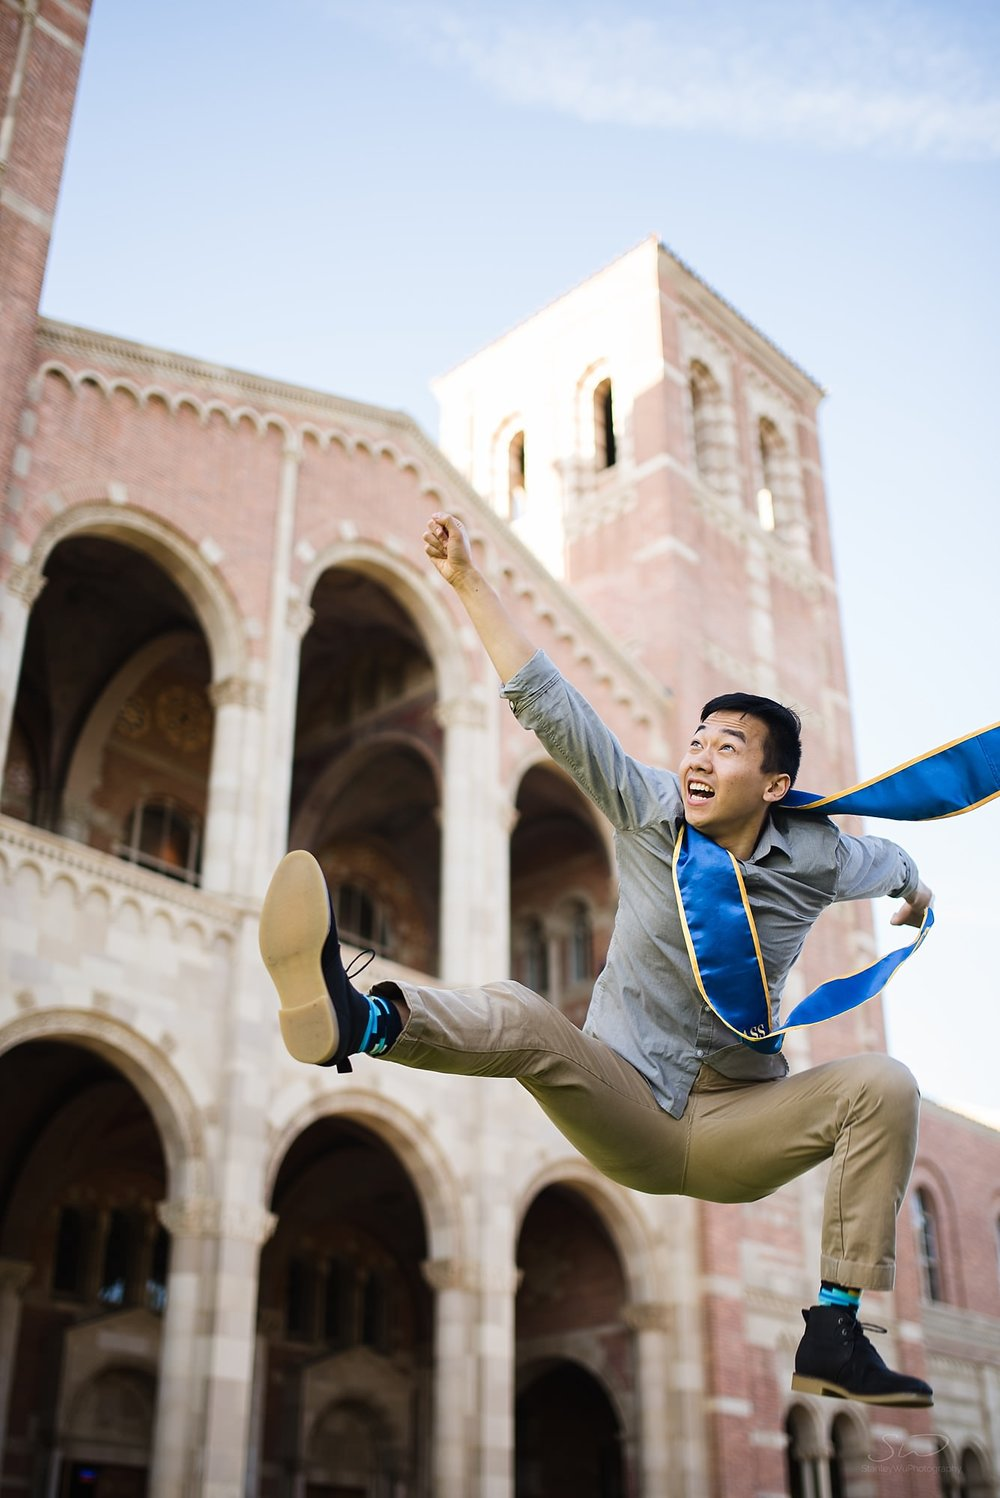 epic graduation senior portrait of a guy jumping enthusiastically in front of royce at ucla in los angeles